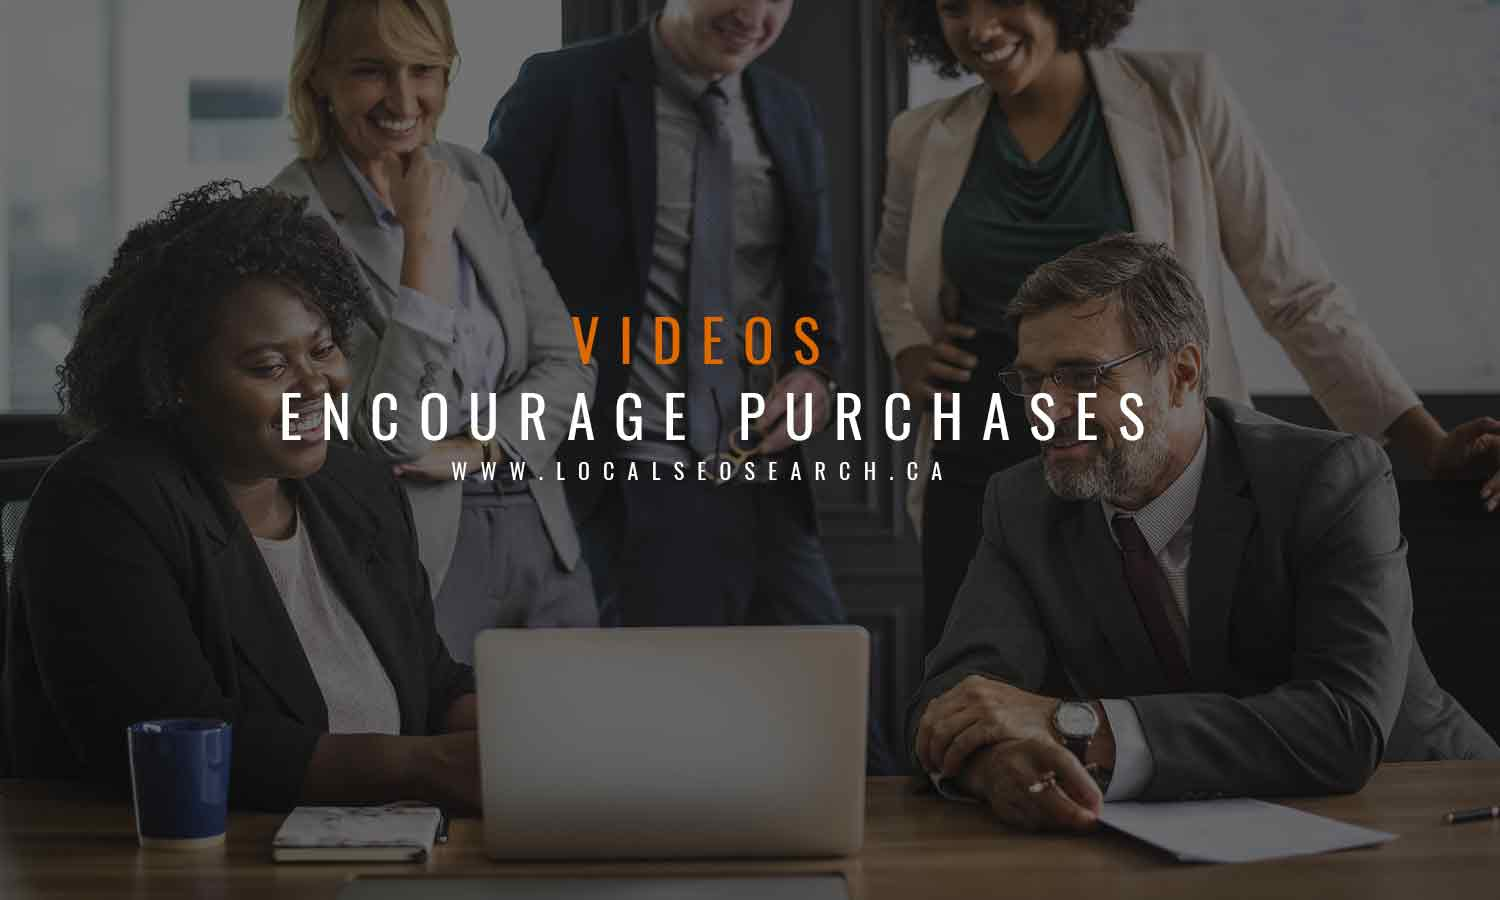 video-encourage-purchases